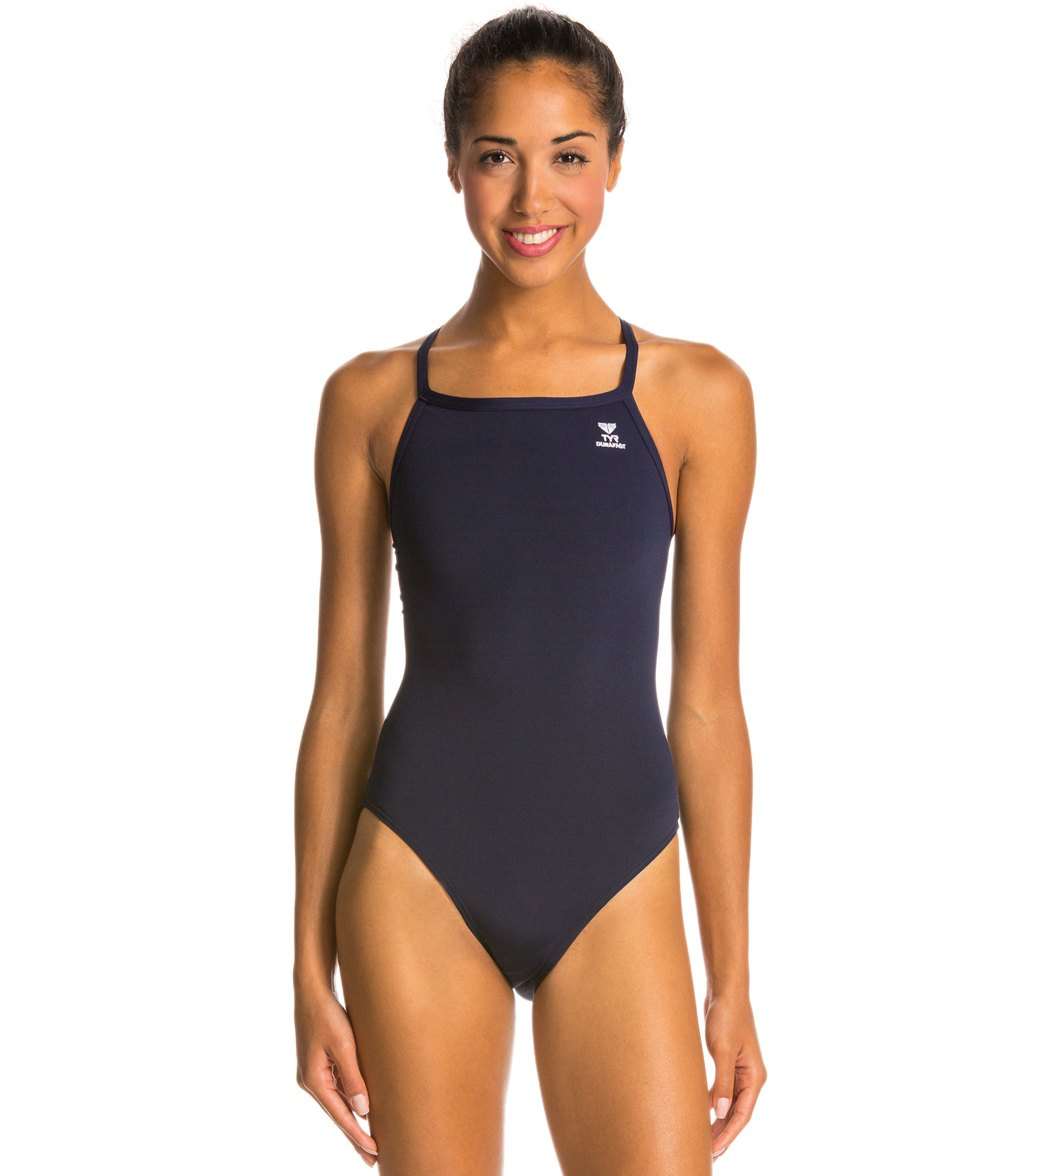 ade4ae4363119 TYR Durafast Solid Diamondfit One Piece Swimsuit at SwimOutlet.com - Free  Shipping